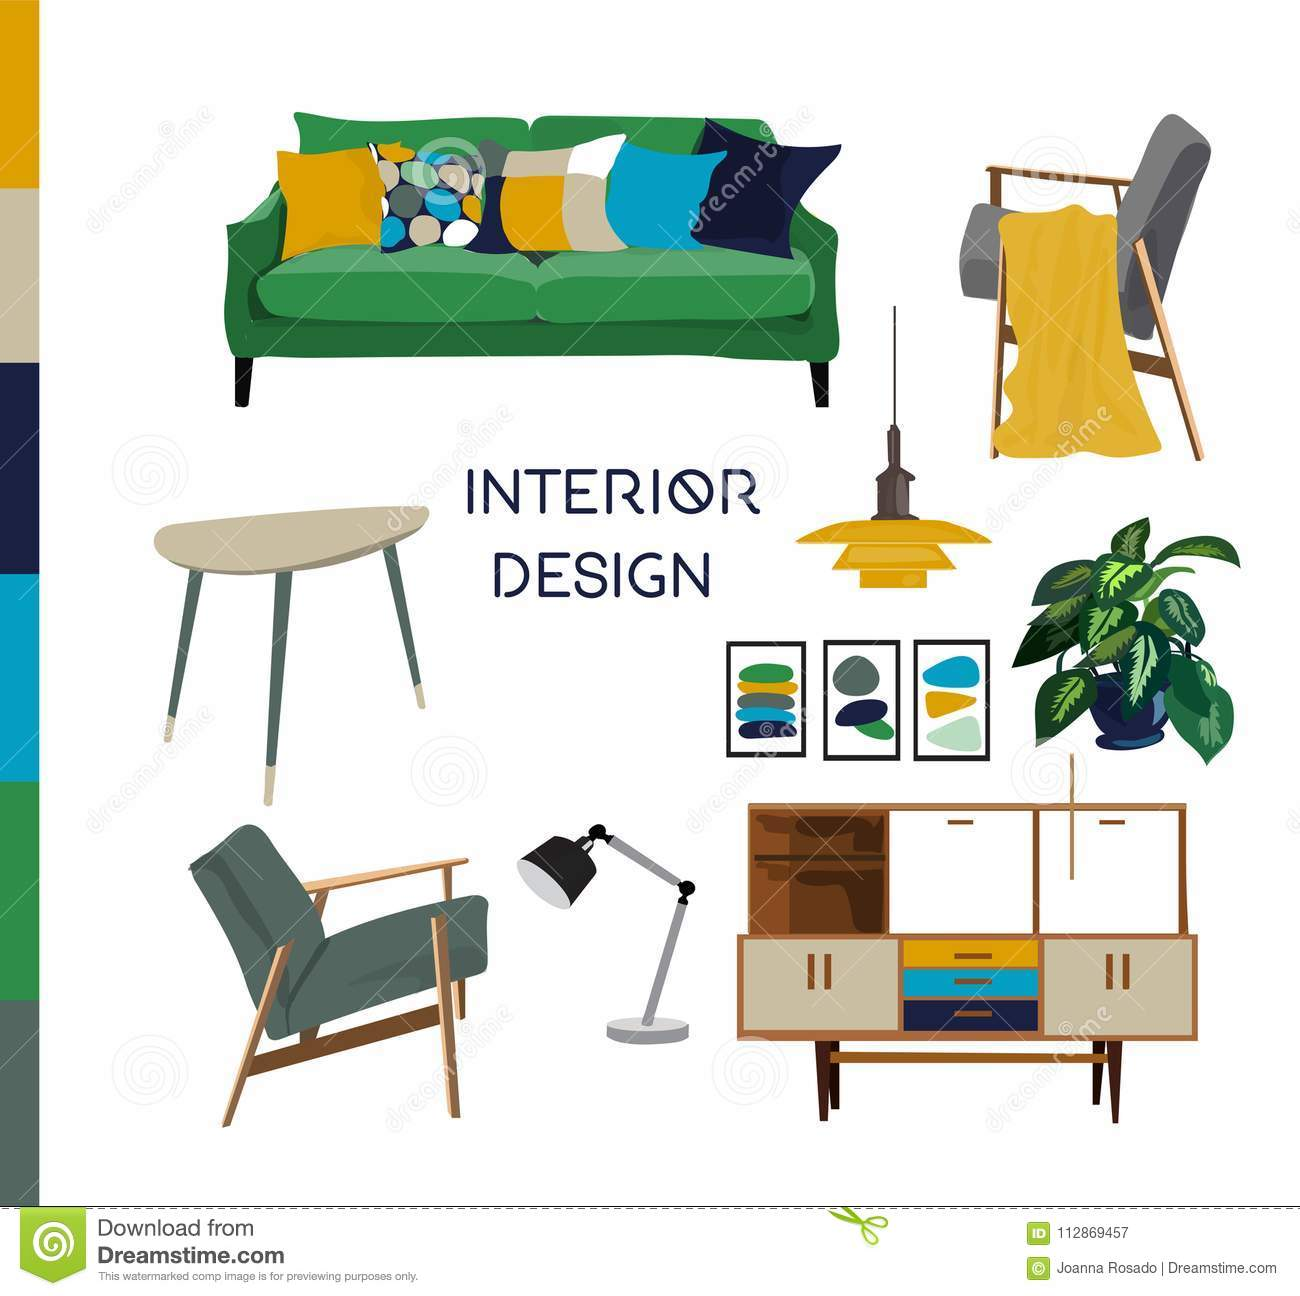 Image of: Vector Interior Design Watercolor Illustration Living Room Furniture Stock Vector Illustration Of Danish Lifestyle 112869457